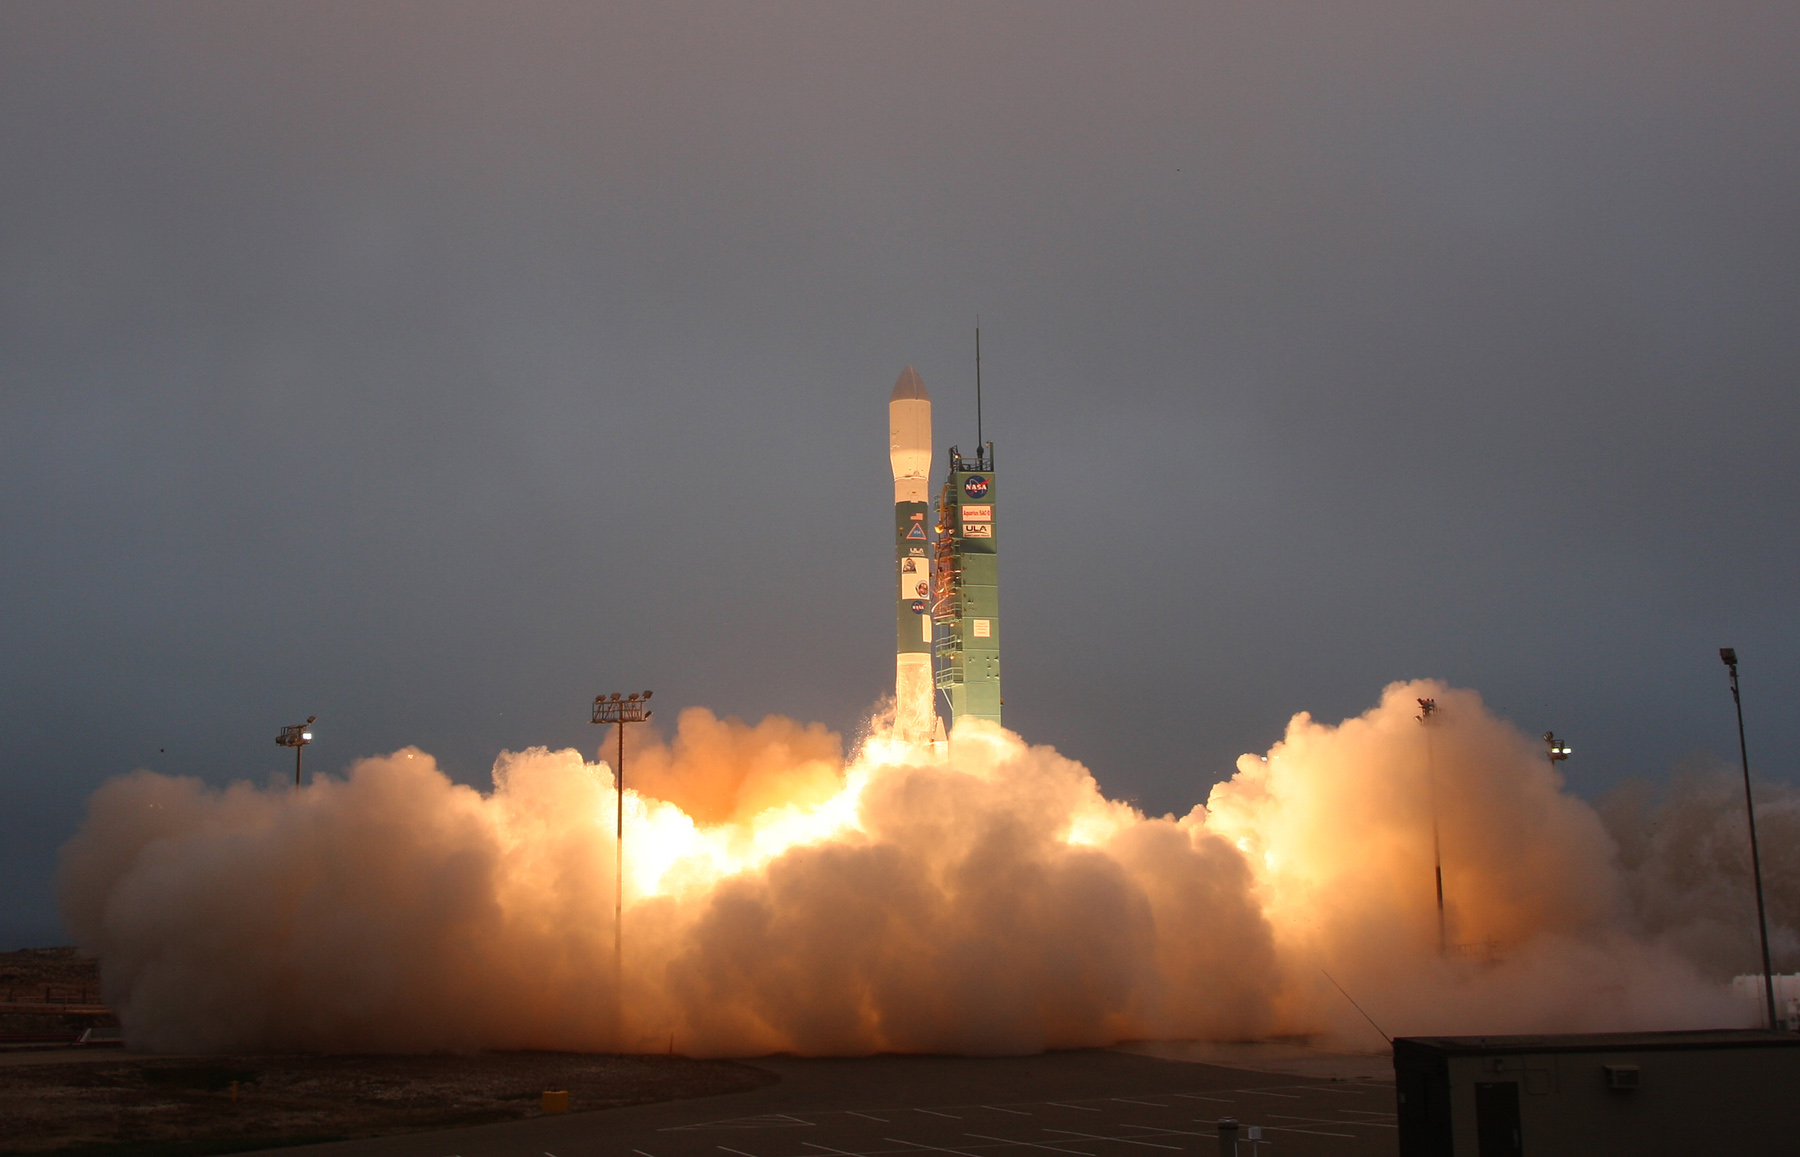 The SAC-D/Aquarius satellite launched June 10, 2011, atop a United Launch Delta 2 rocket from Vandenberg Air Force Base, California. Credit: ULA